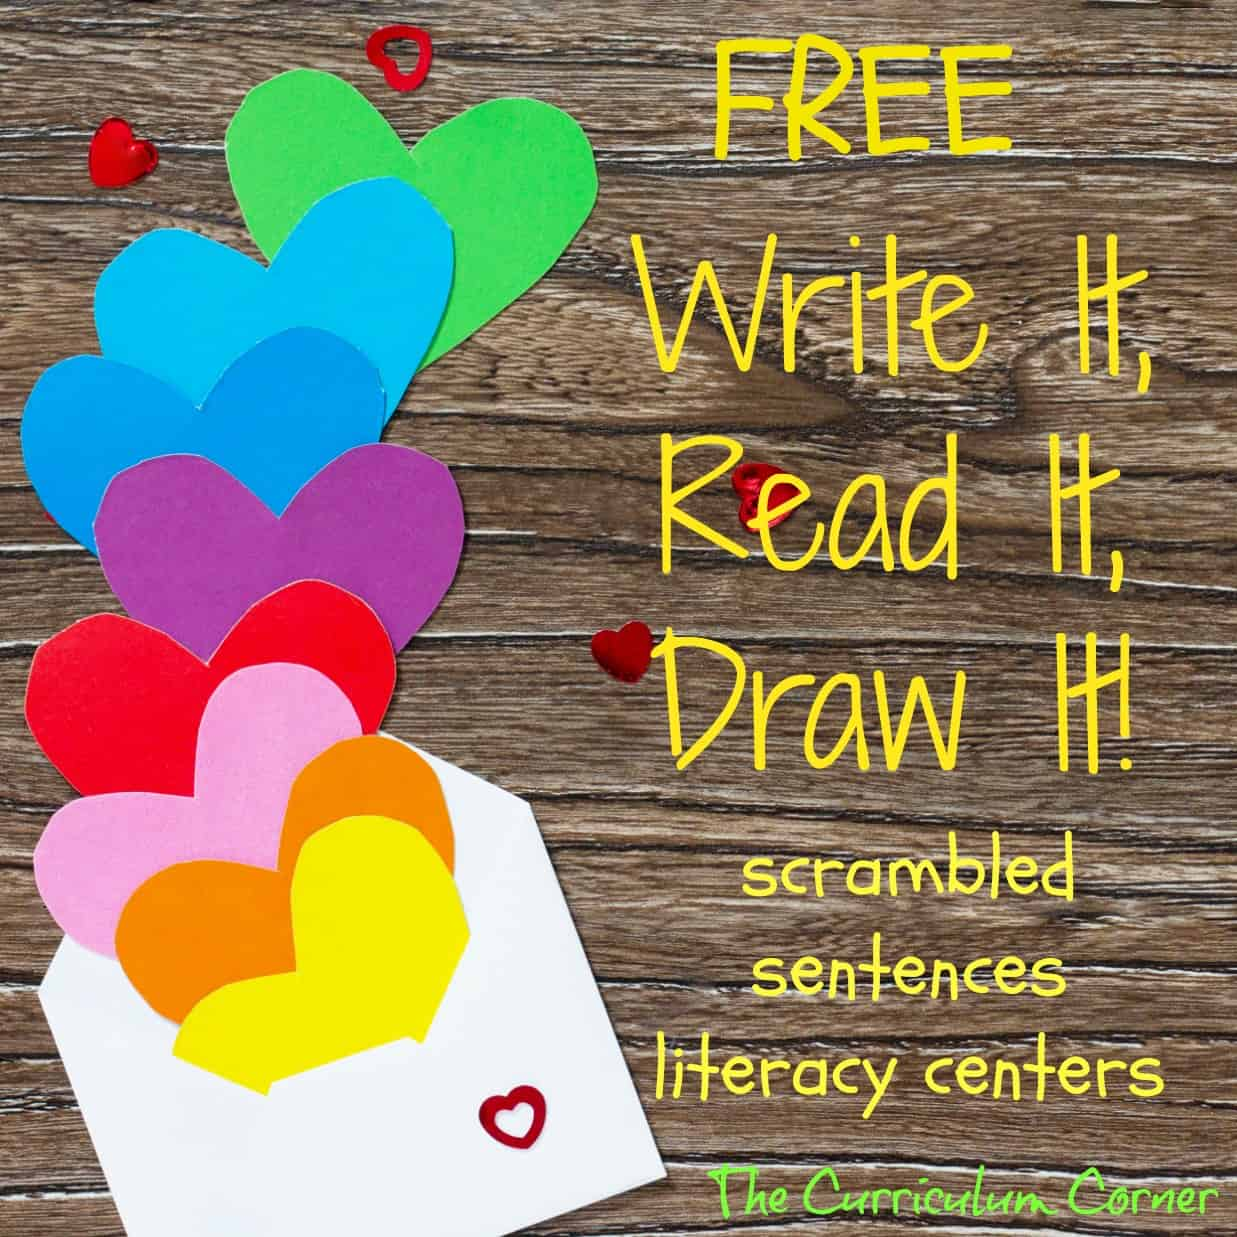 Valentine's Day Read, Write & Draw It!